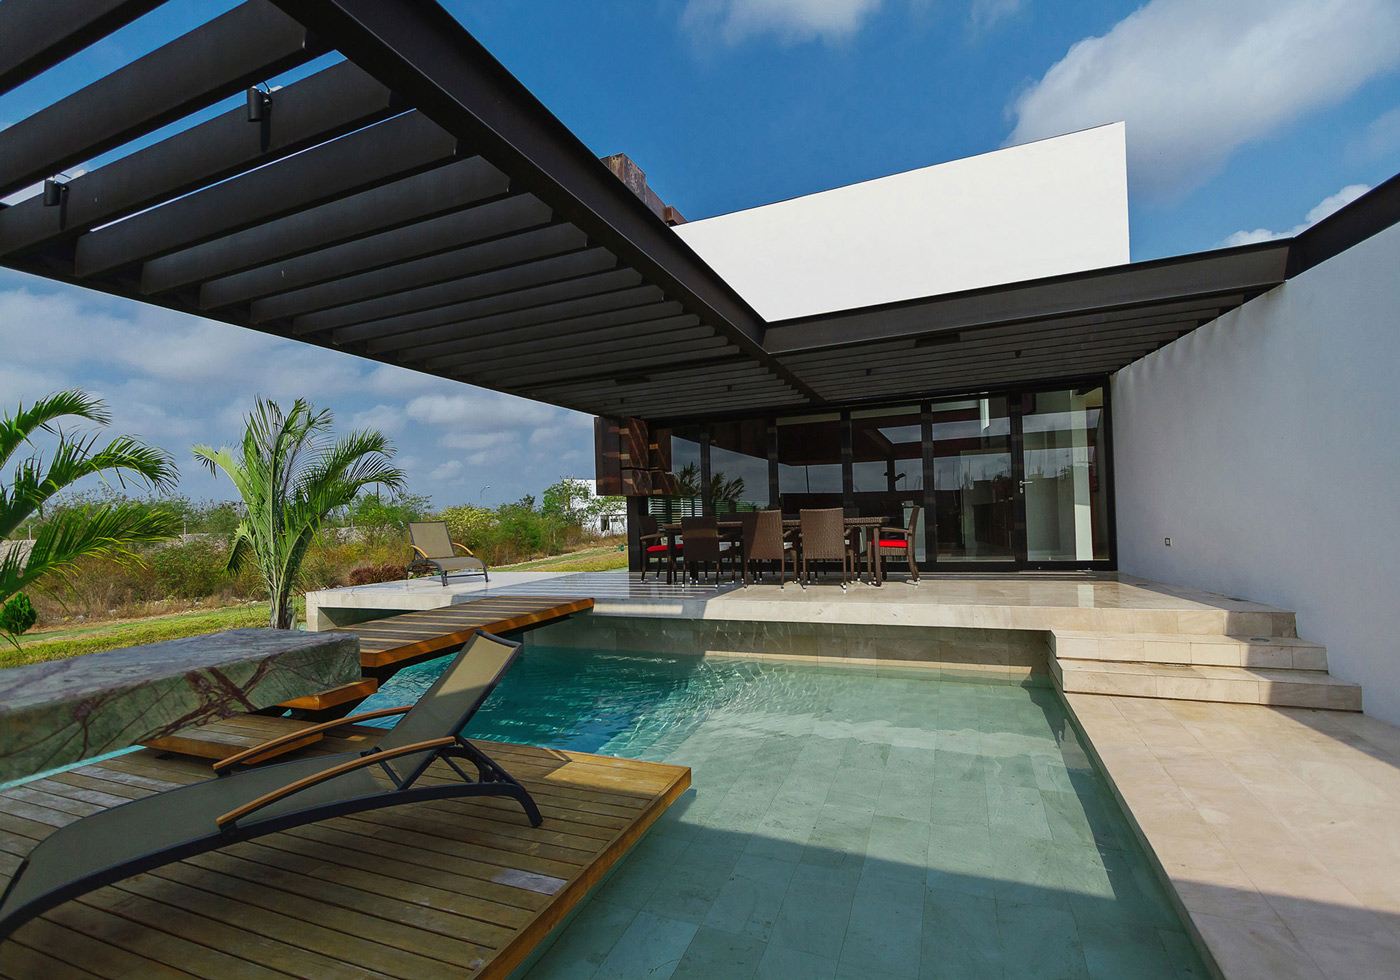 Pool, Terrace, Furniture, Contemporary Residence in Merida, Yucatan